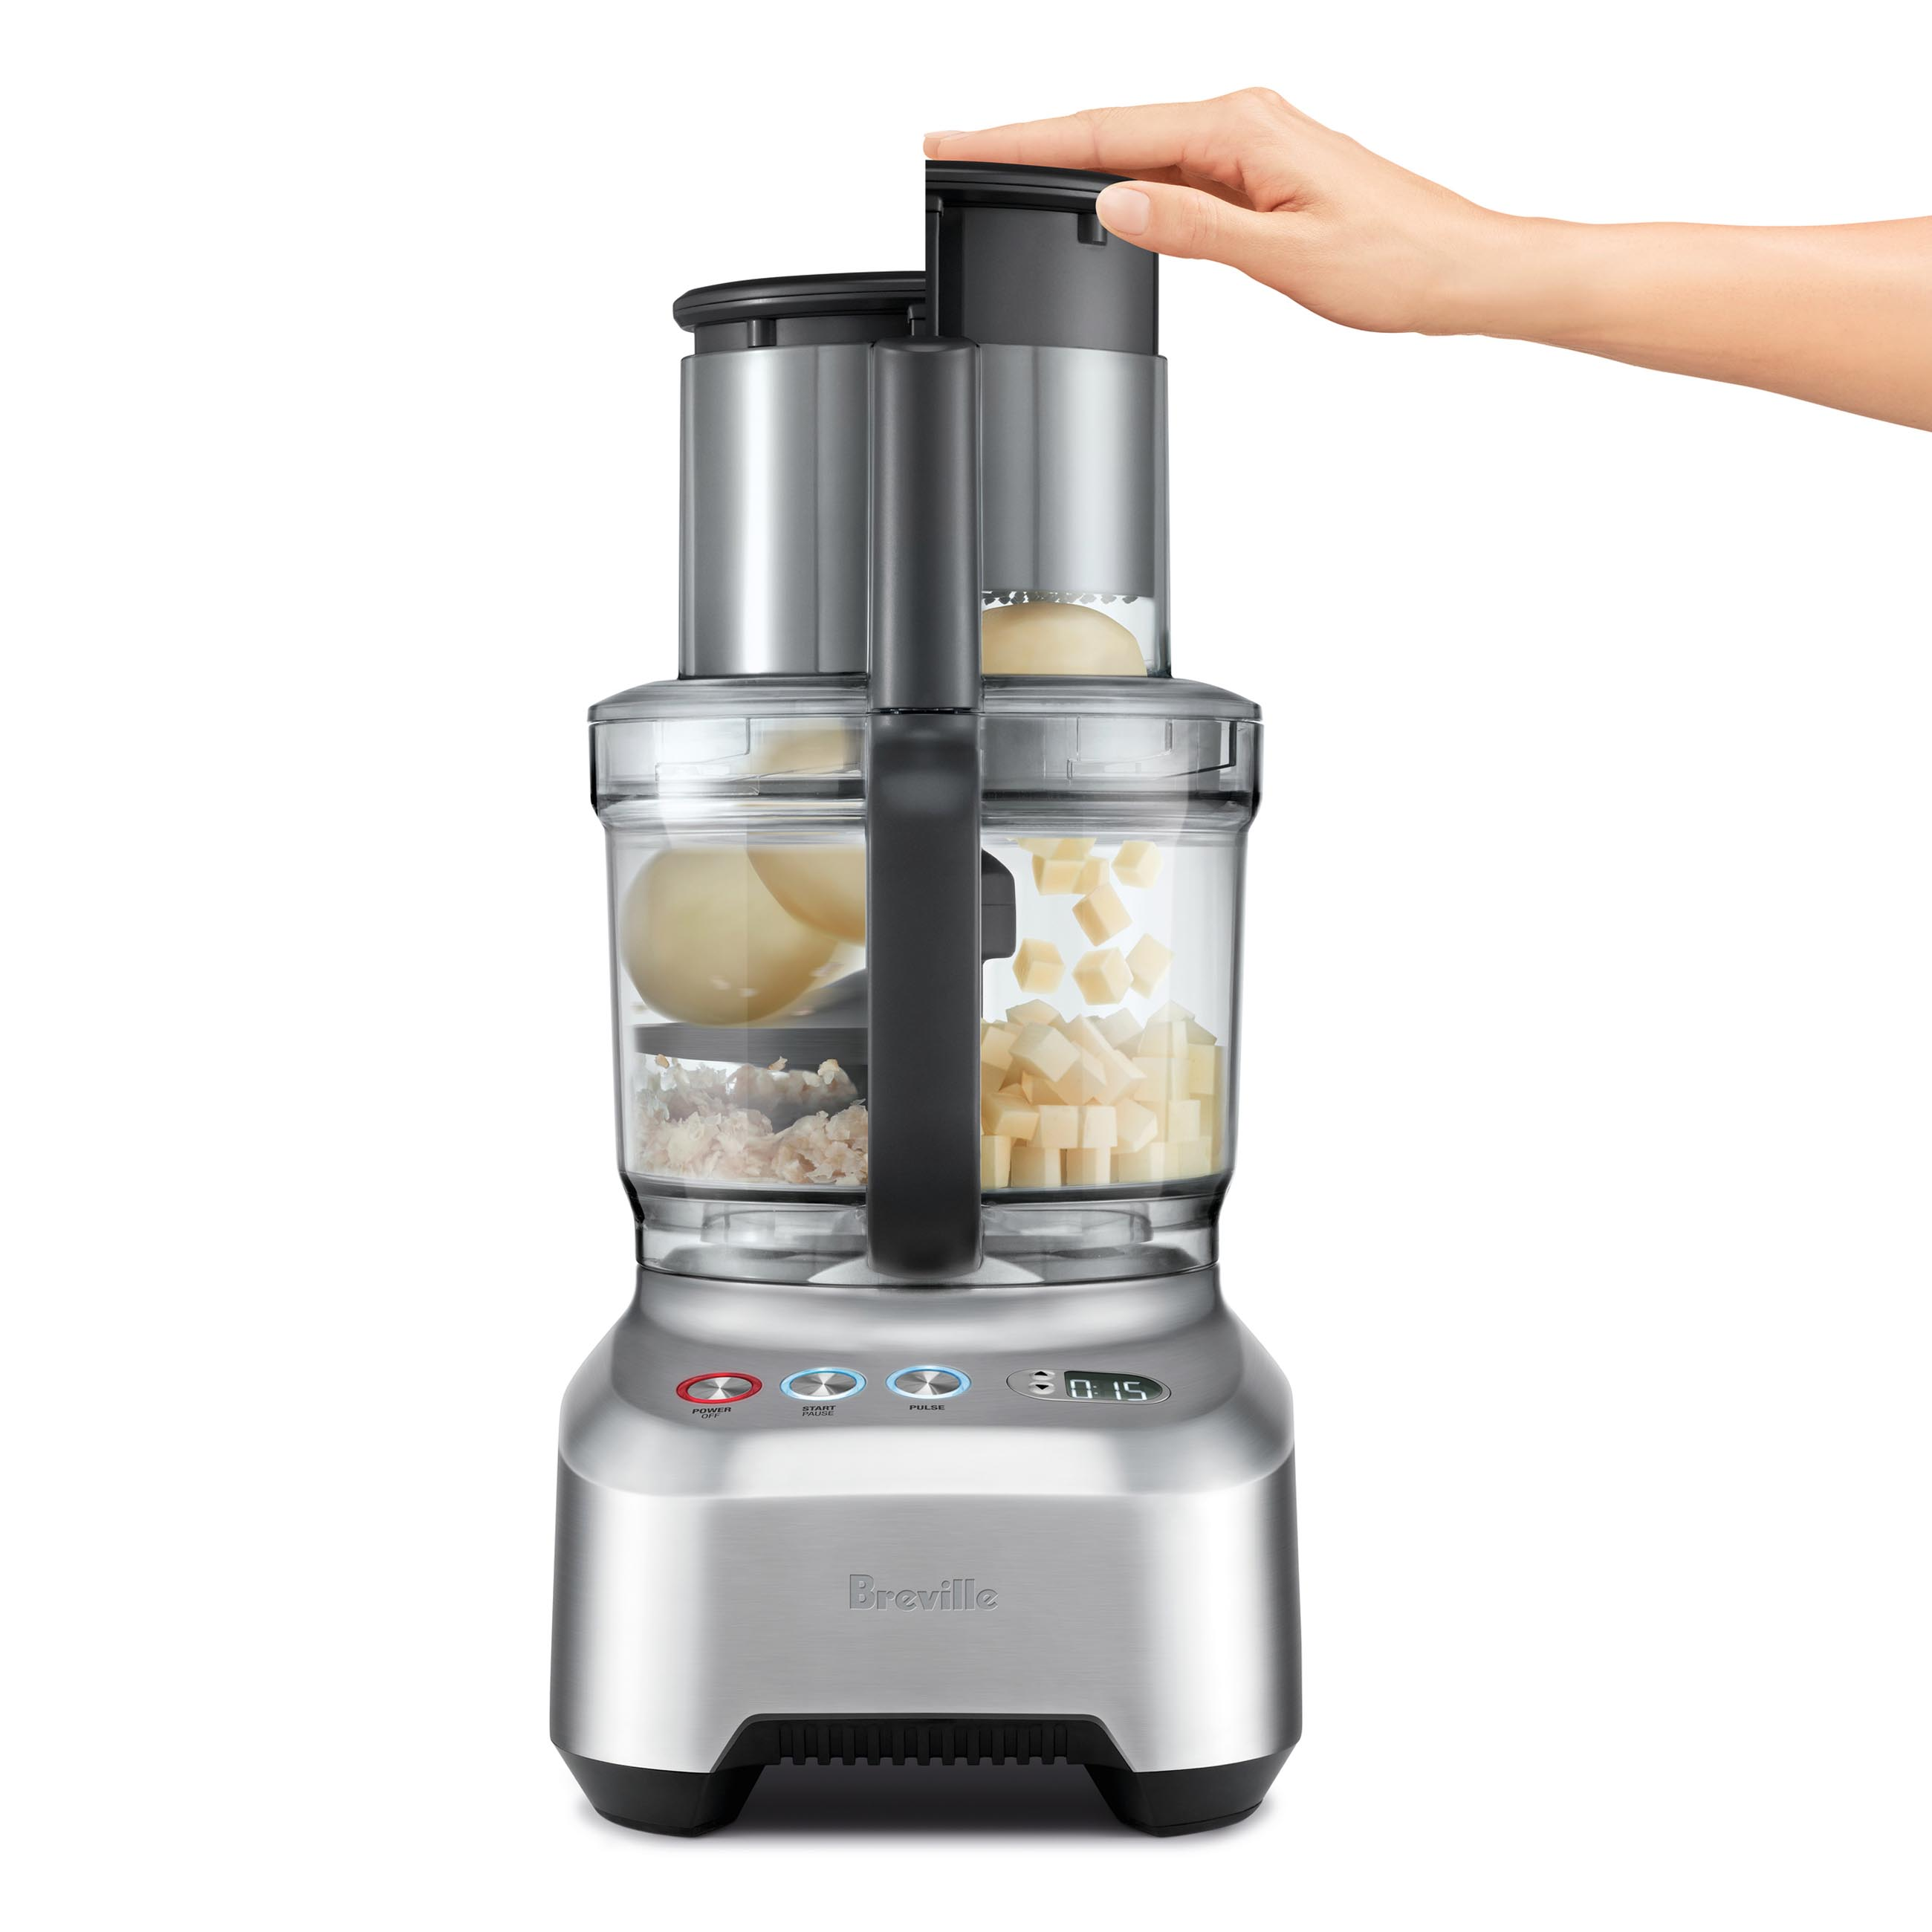 the Kitchen Wizz™ 15 Pro Food Processors in Brushed Aluminium heavy duty induction motor